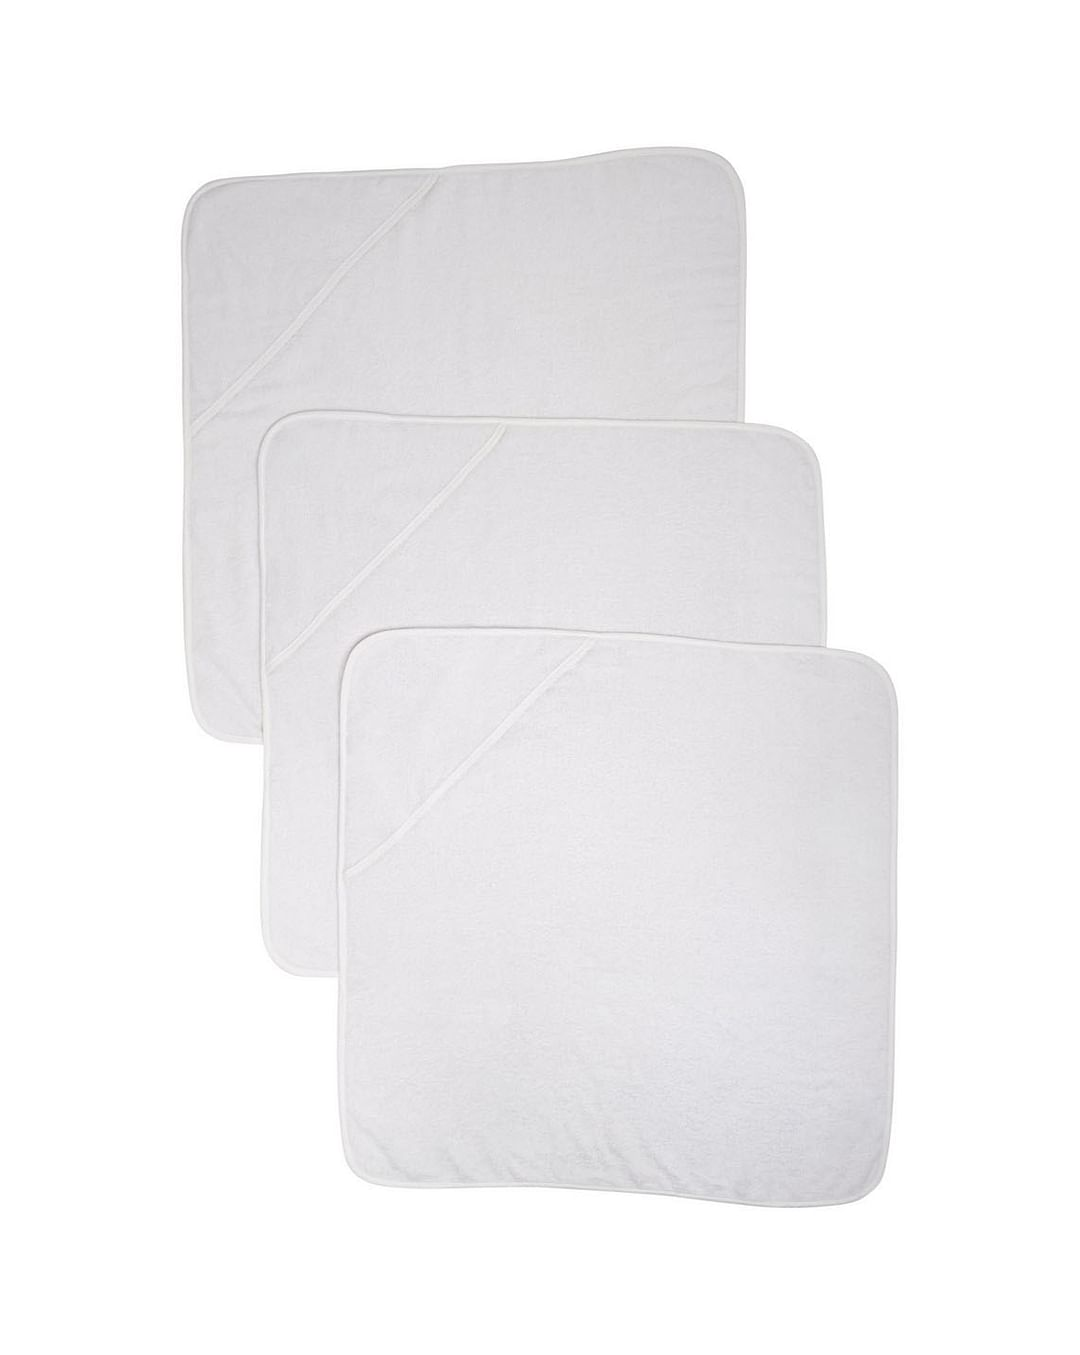 Mothercare   Cuddle 'N' Dry Hooded Towels - White - Pack of 3